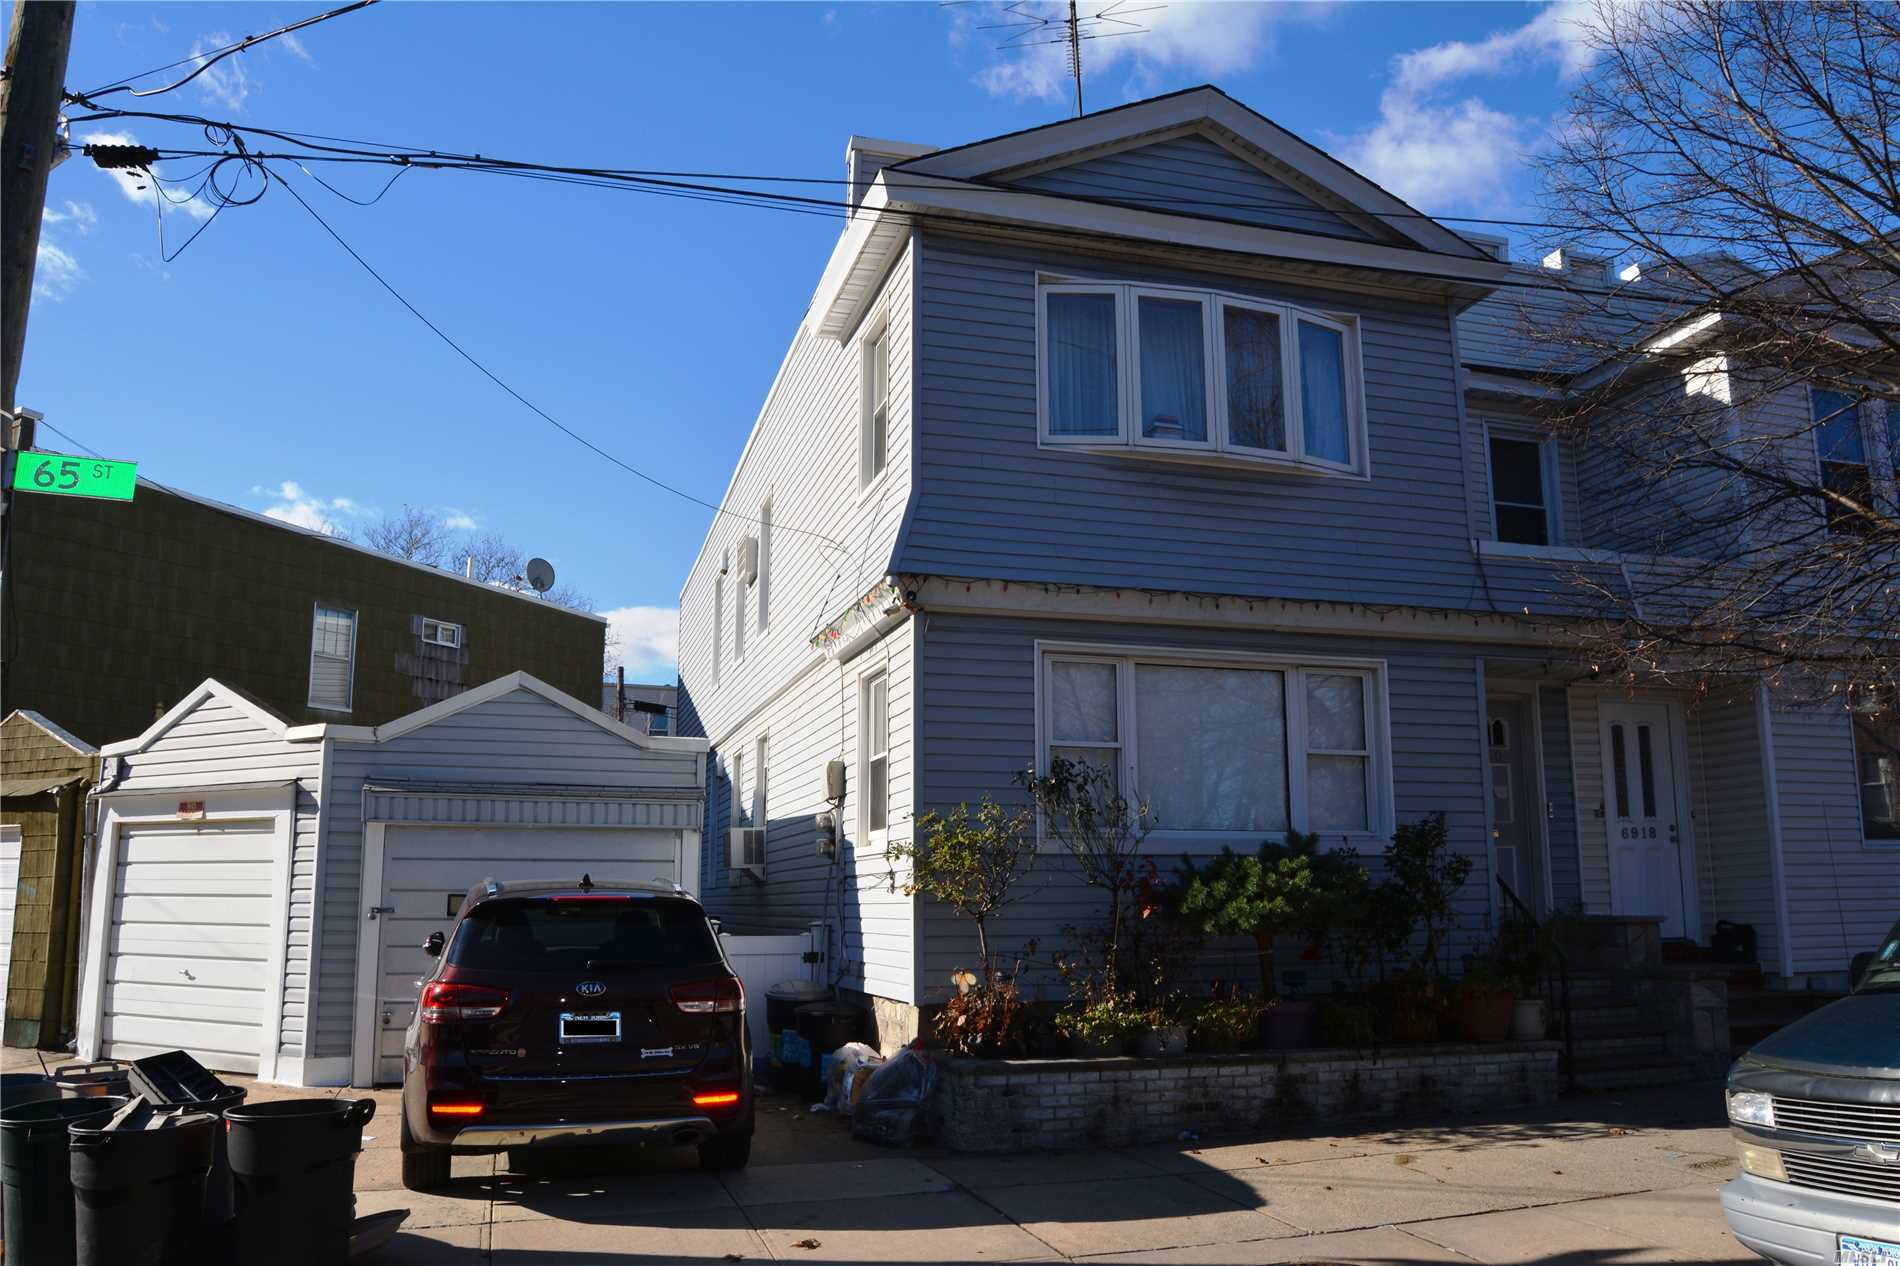 This is a legal 2 family home with a private, detached garage for 2 cars. It's a frame home in fair condition. Large fenced in back yard. Walkway to the backyard from the street. Basement is full grade and partially finished. First floor is renovated. 2nd floor needs some cosmetic work. Close to Fresh Pond Road, supermarkets, M train, restaurants and much more.